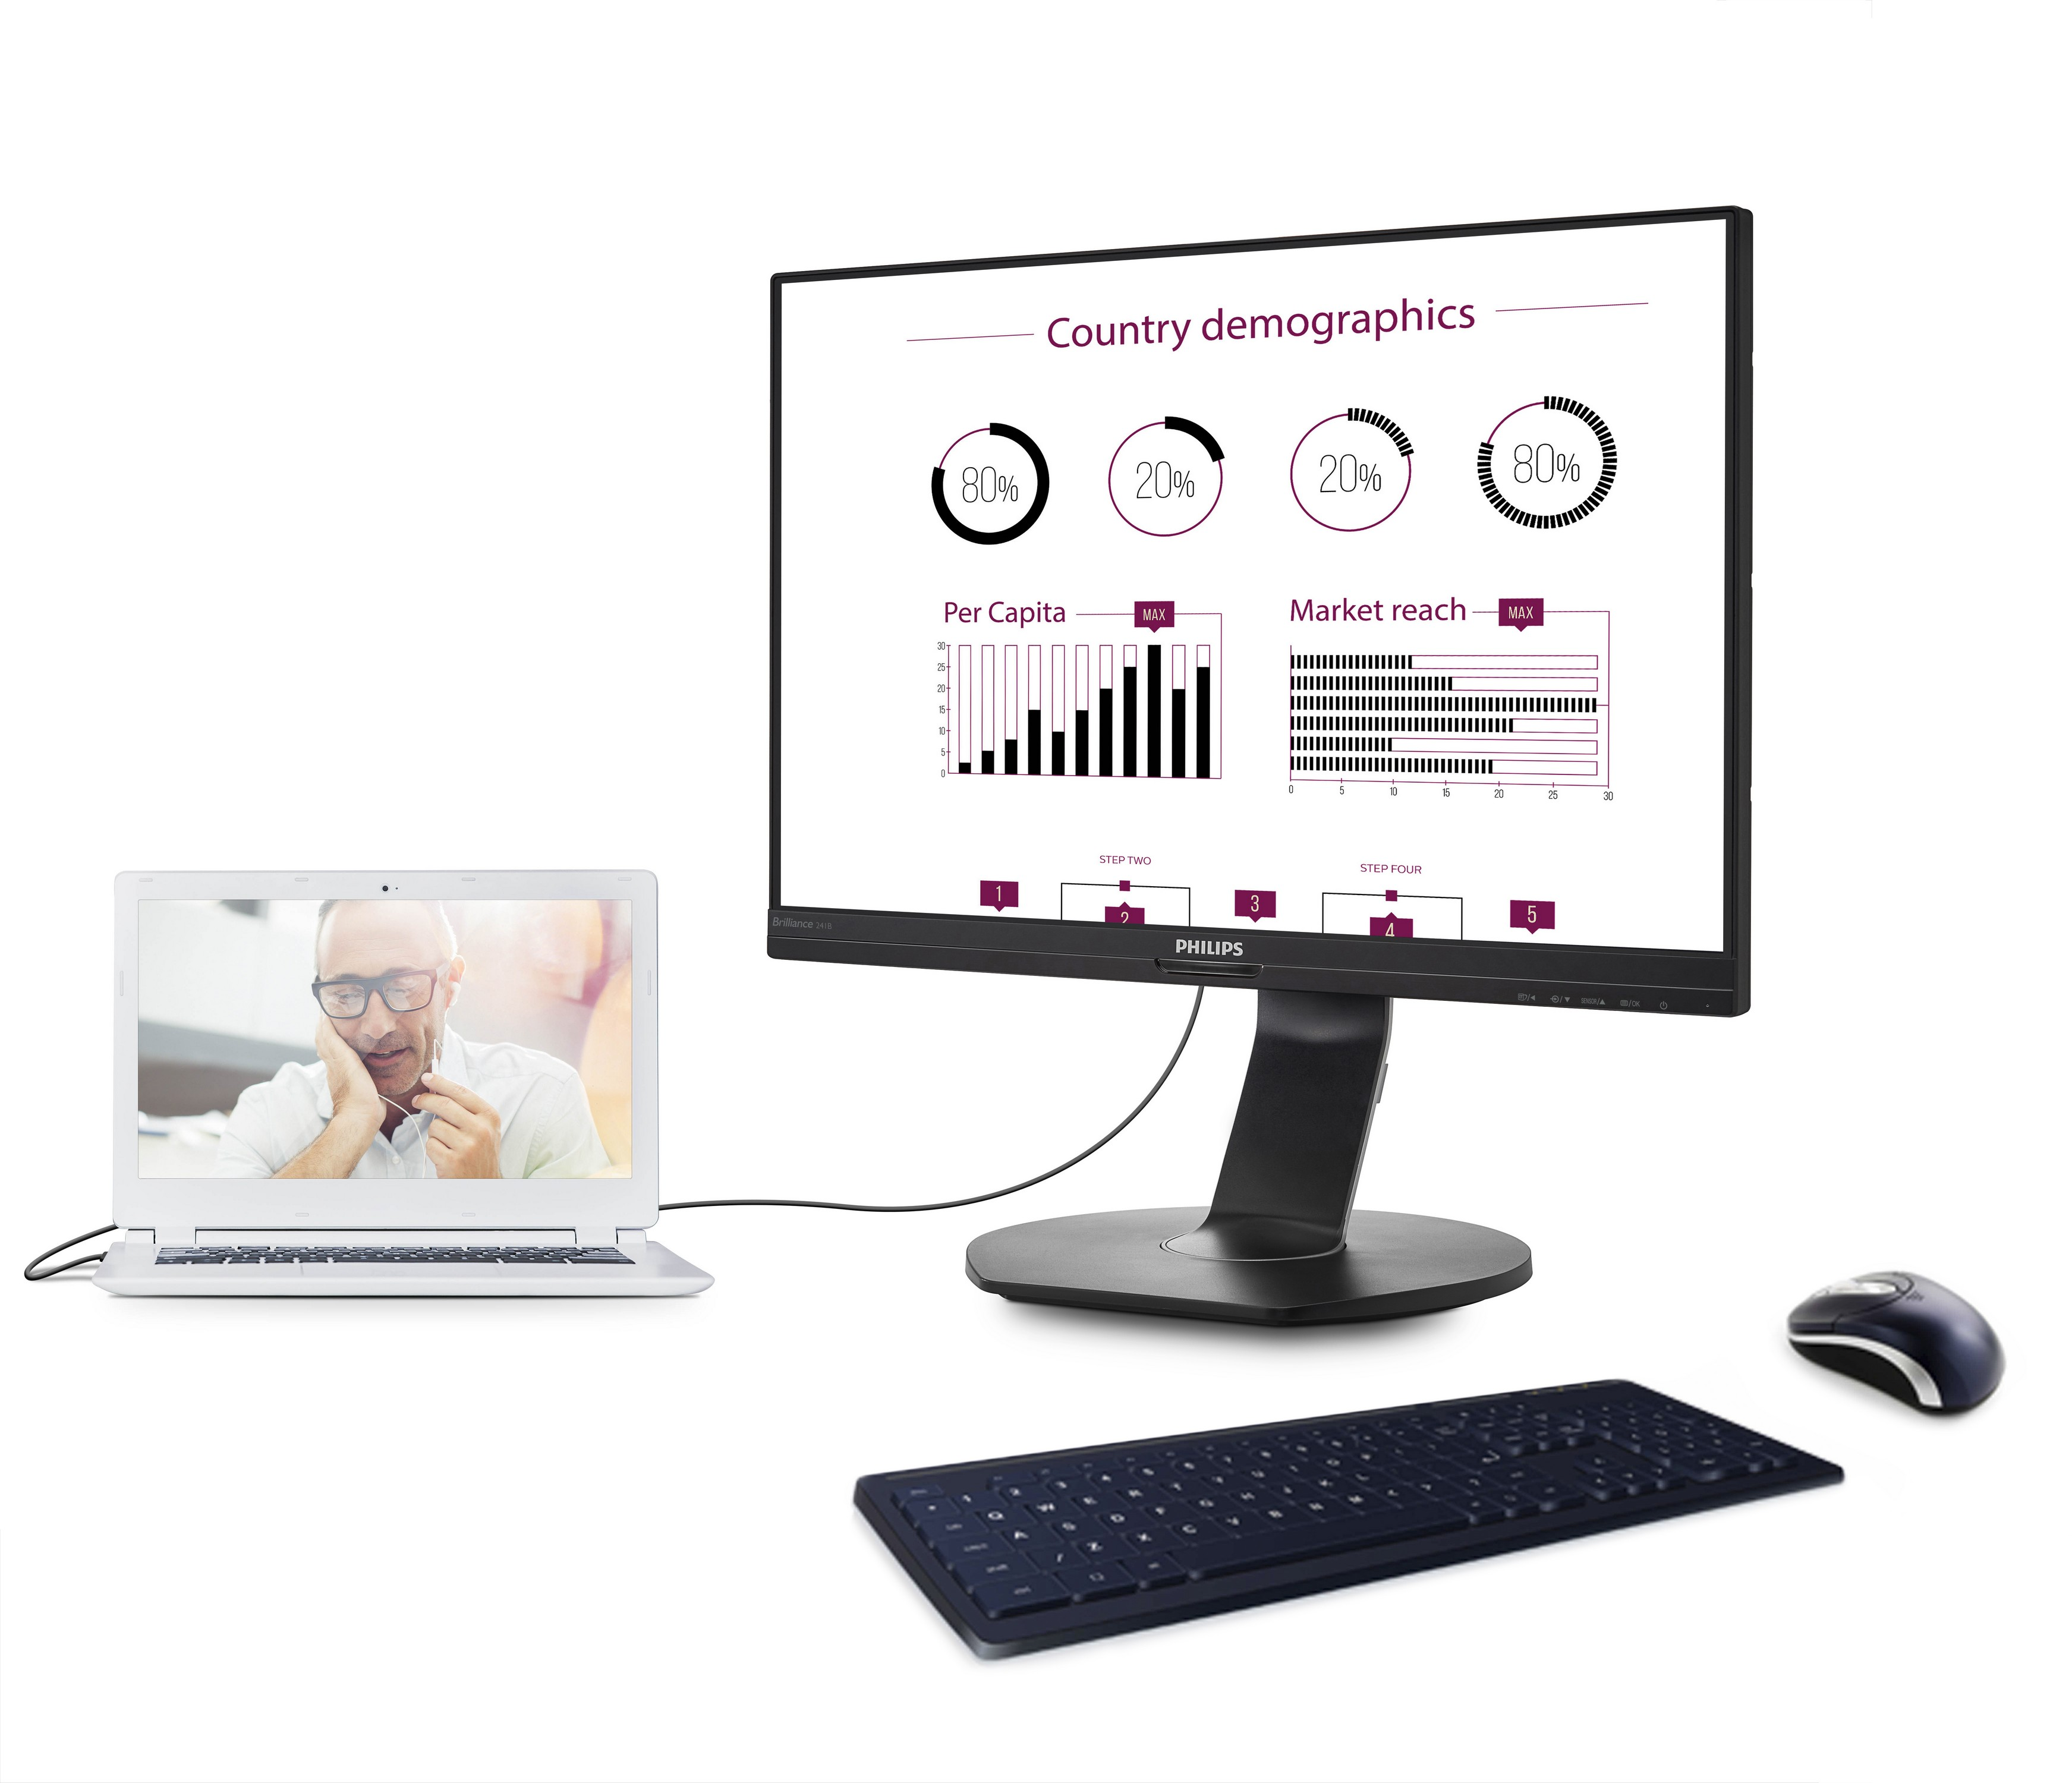 Philips monitori na ISE 2018 sajmu